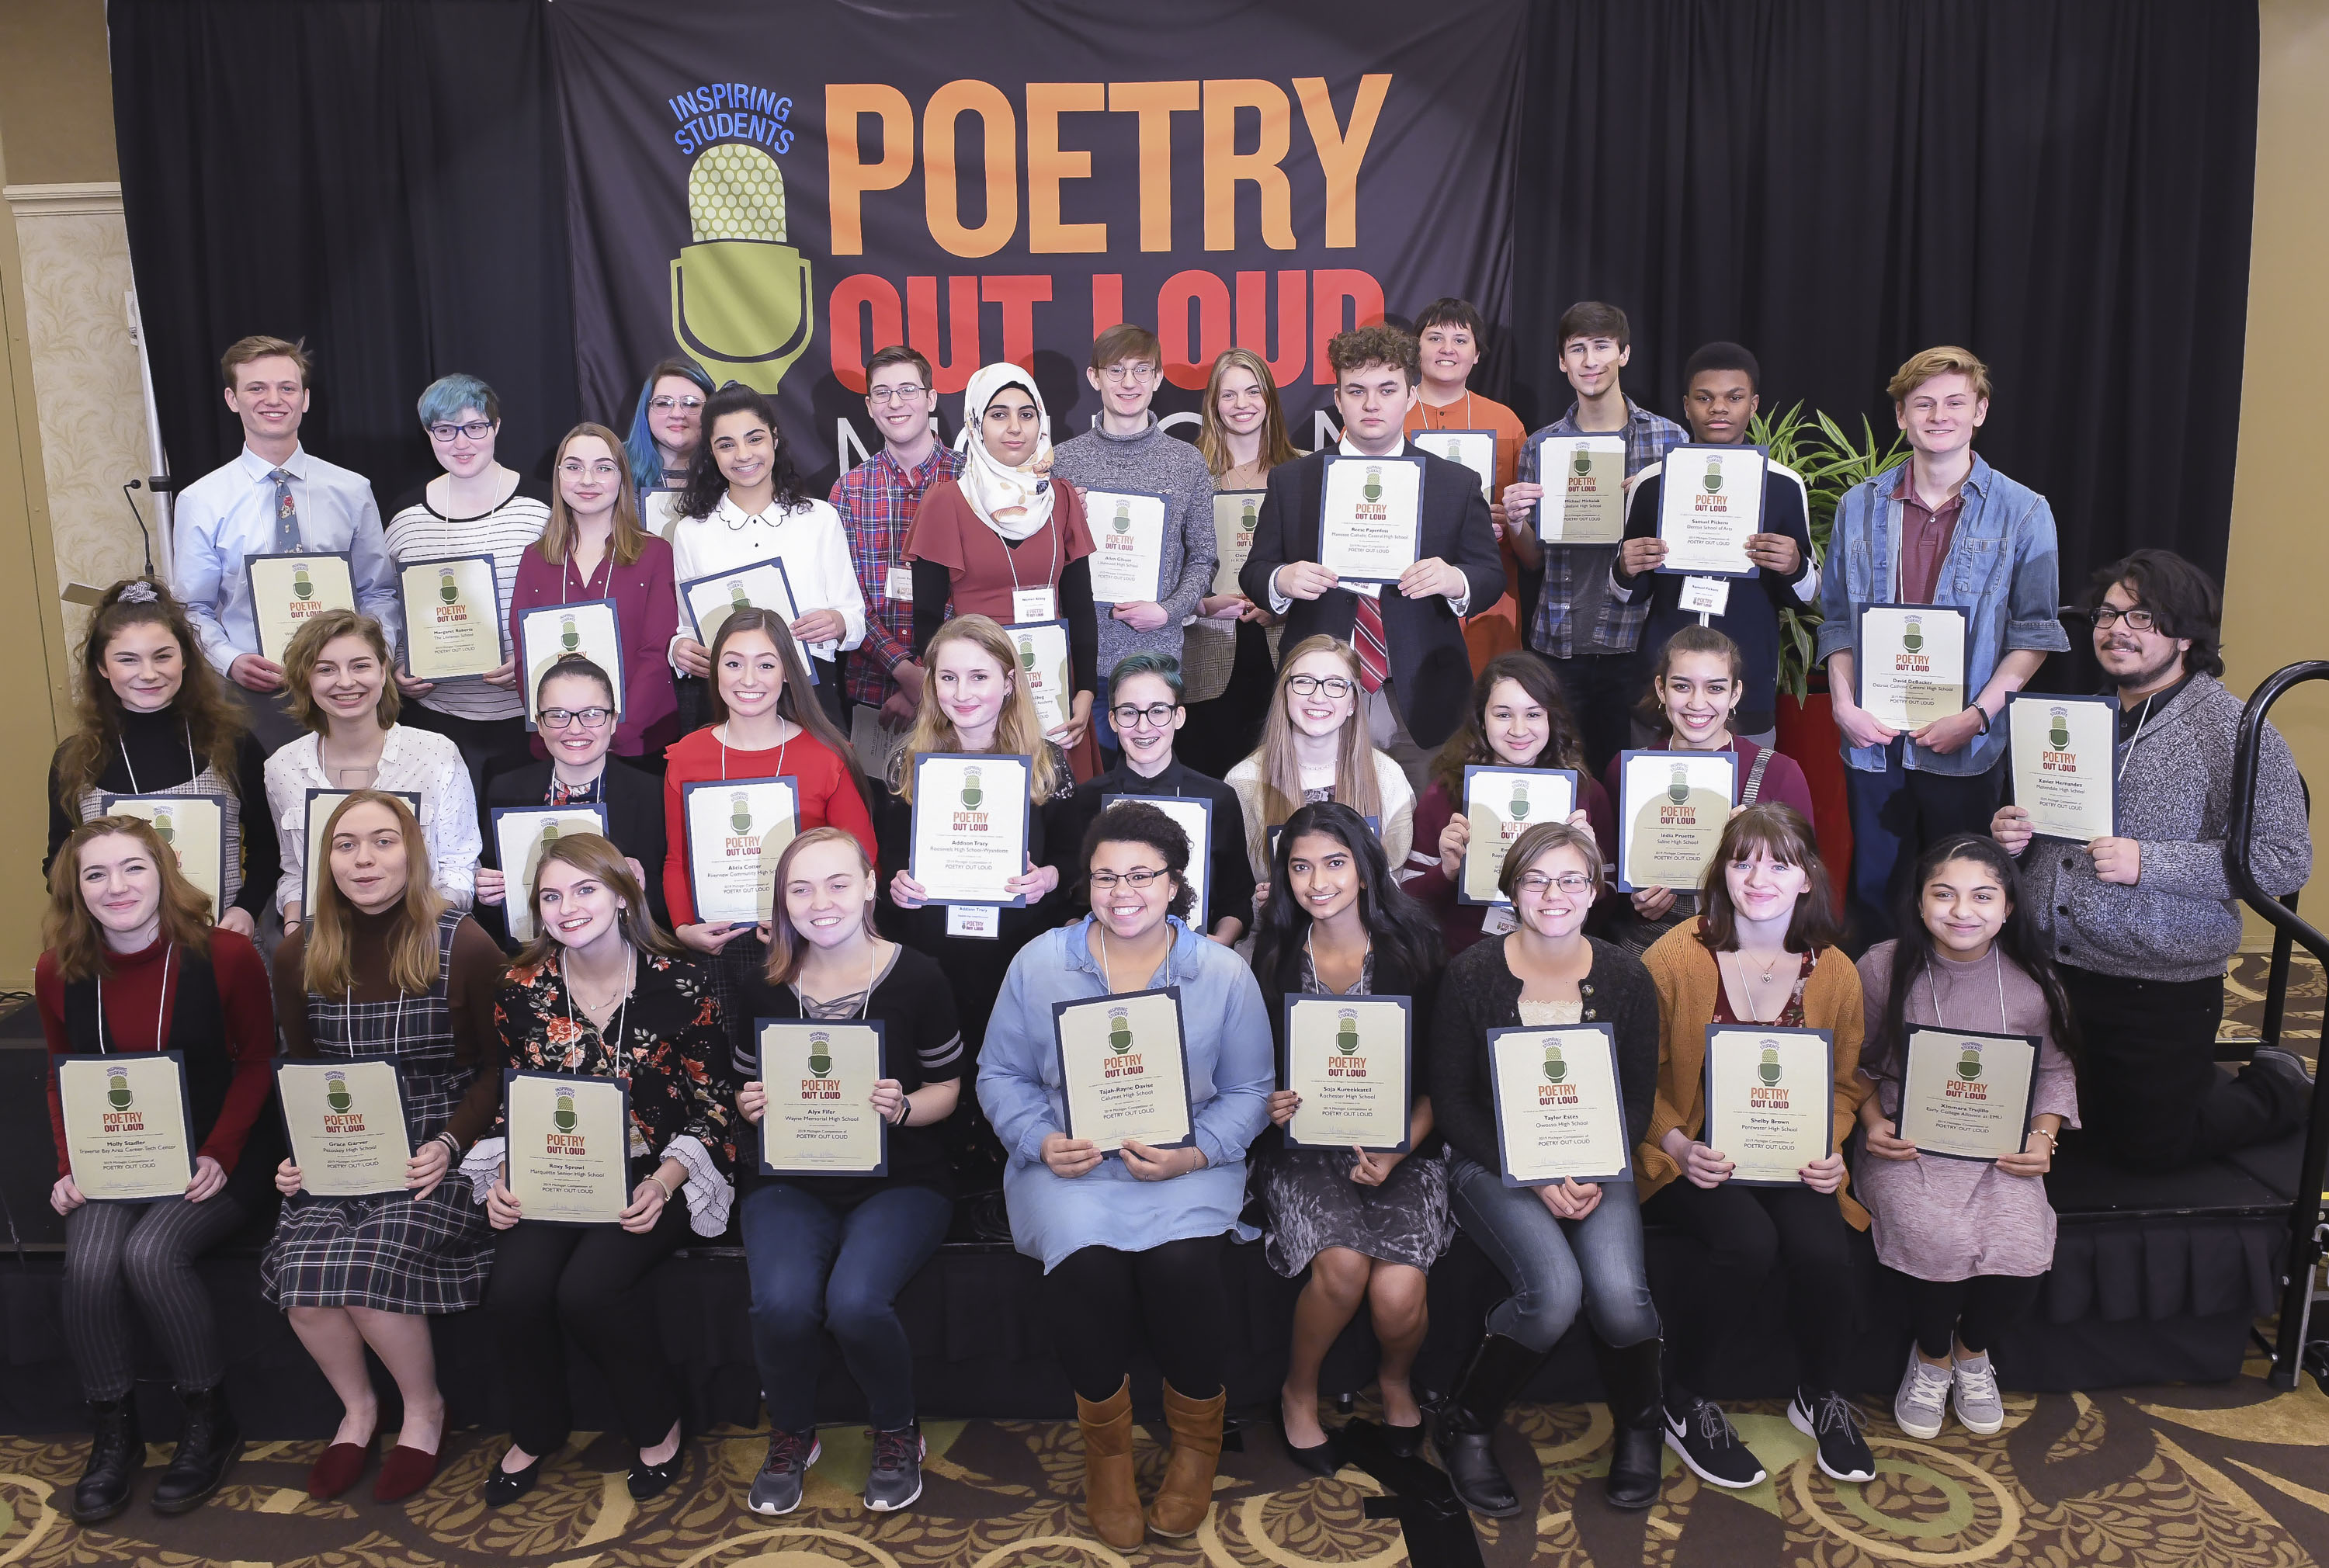 2019 Michigan Poetry Out Loud Champion | Michigan Humanities